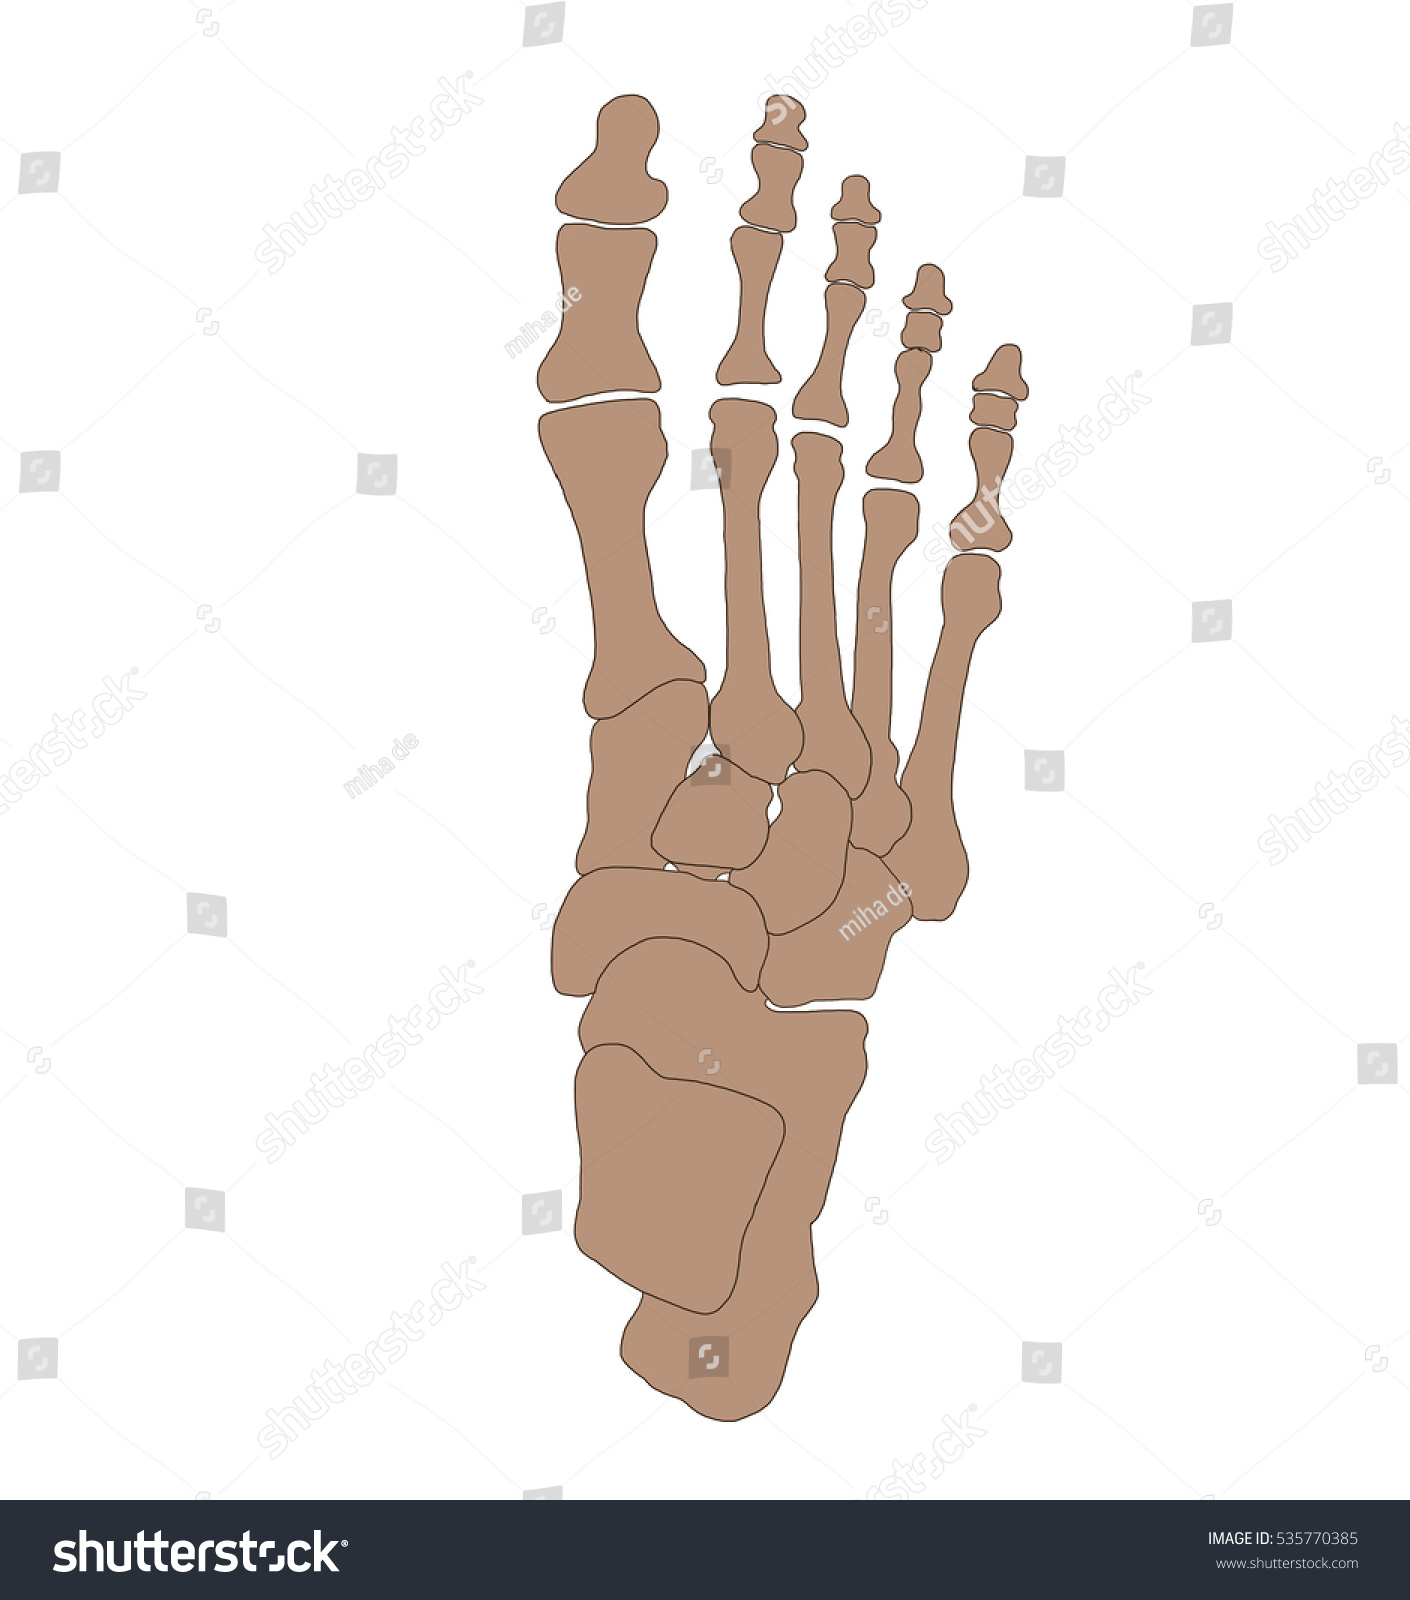 Foot Anatomy Foot Bones Stock Illustration 535770385 - Shutterstock